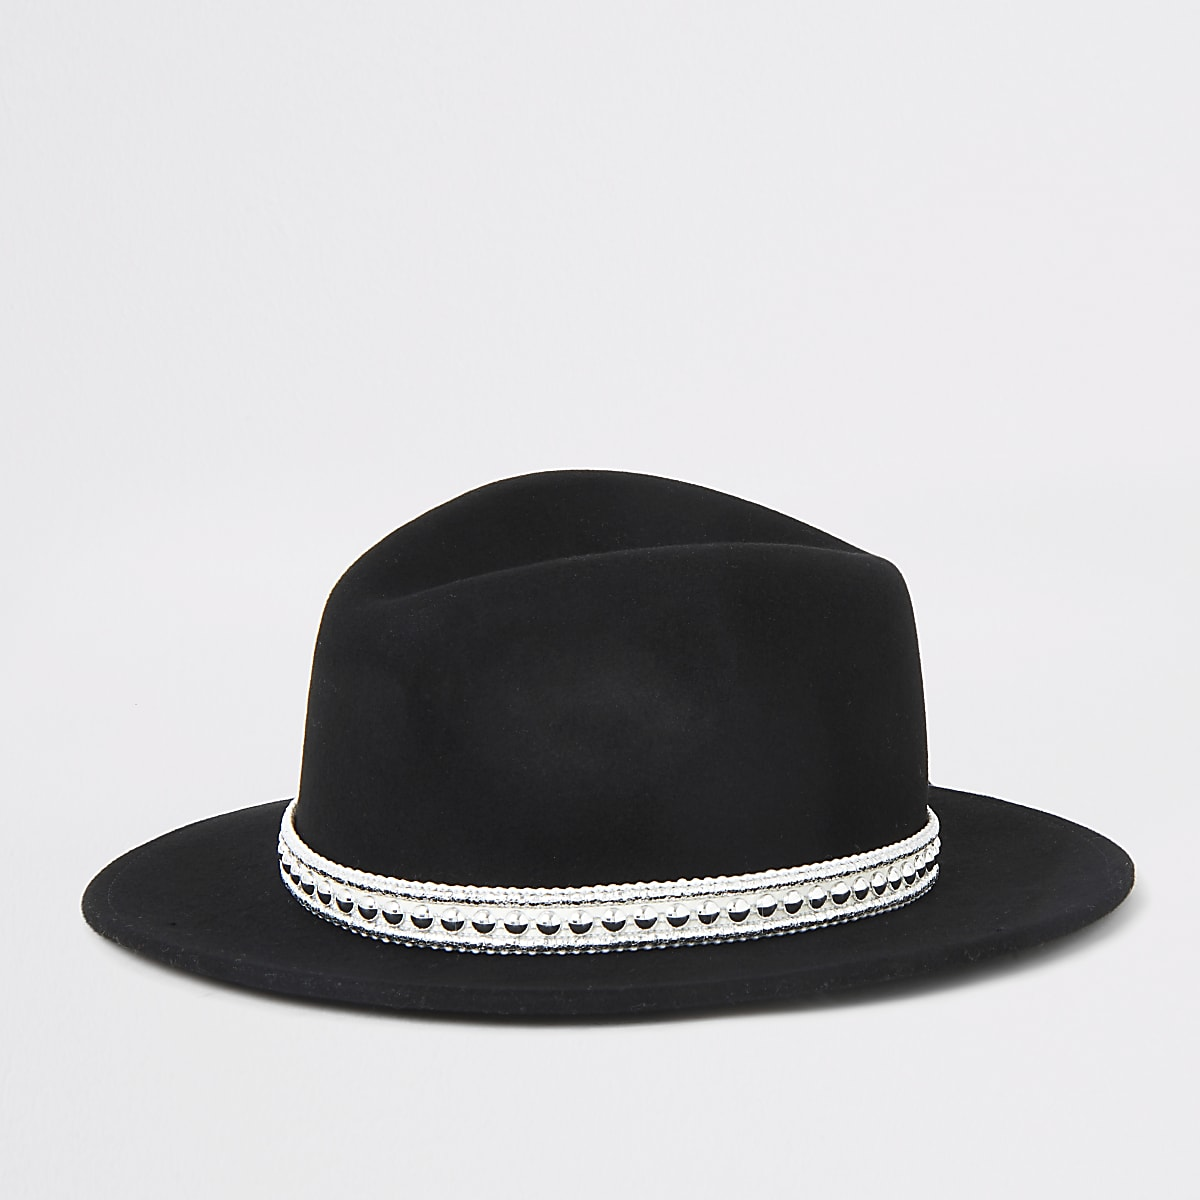 Girls black fedora western hat